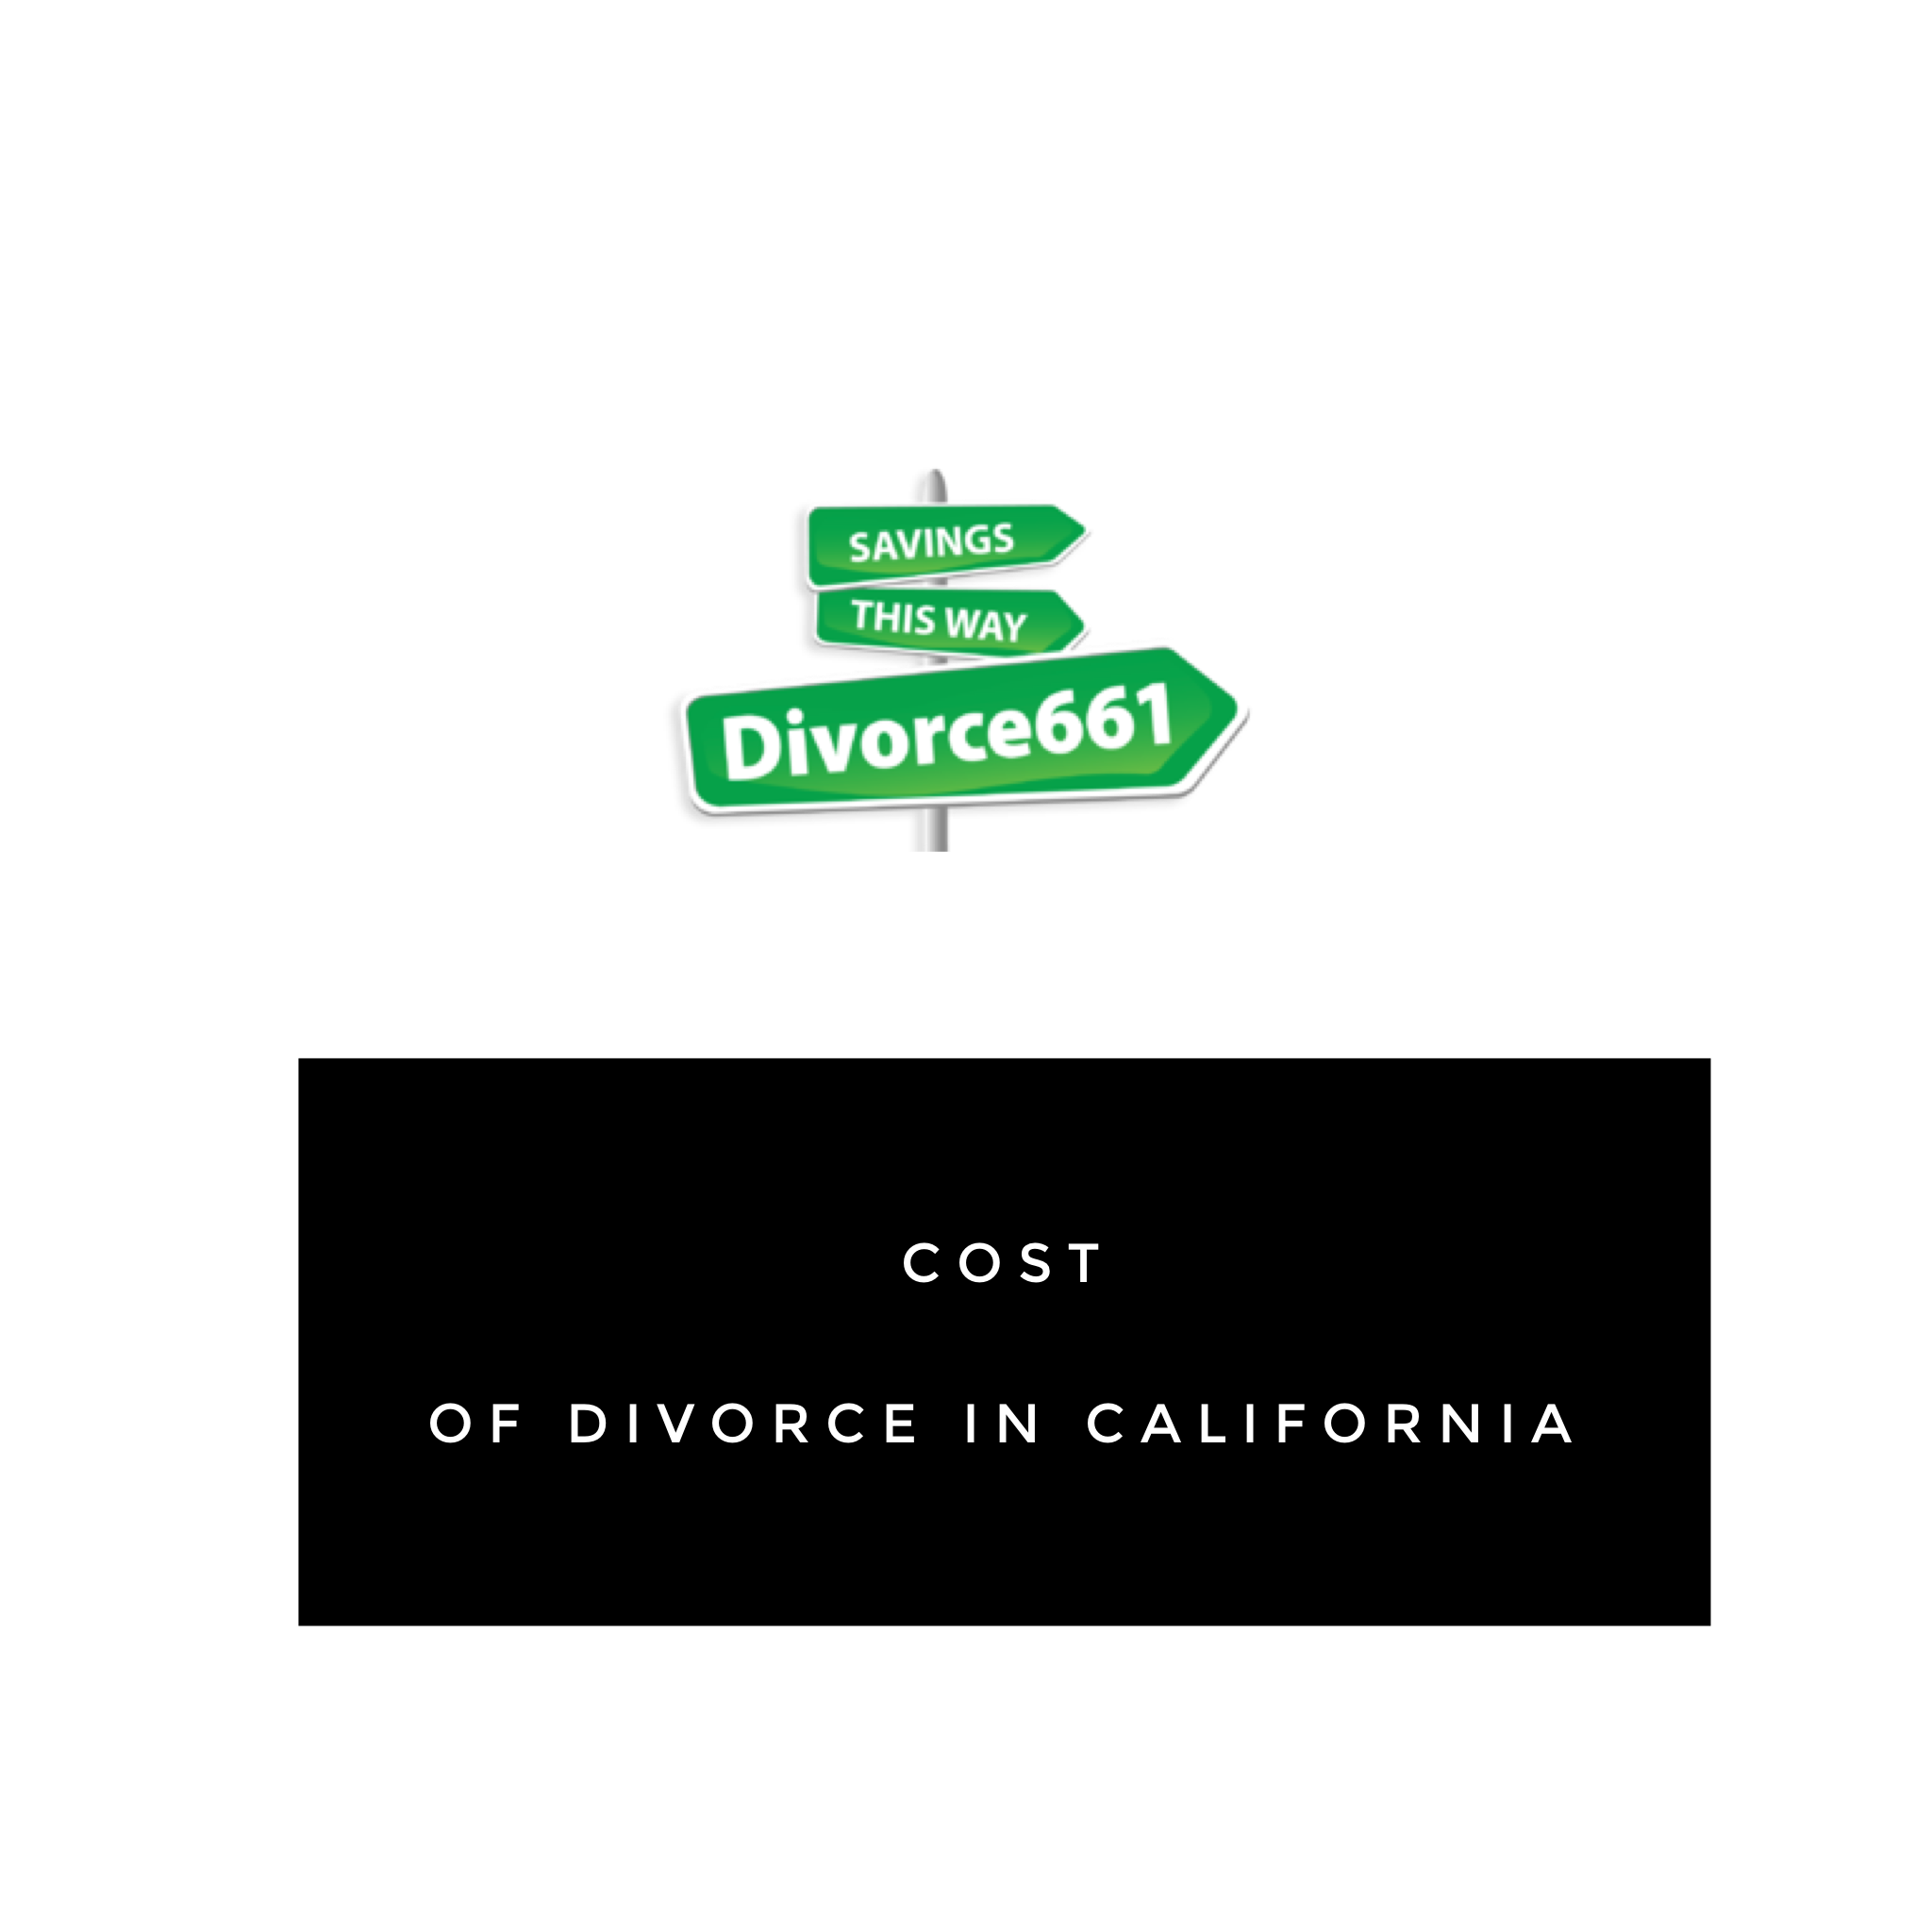 Cost of uncontested divorce in california divorce 661 will save you guys collectively as a group 435 dollars in filing fees and then when you kind of tack on our cost for assisting you with your divorce solutioingenieria Images